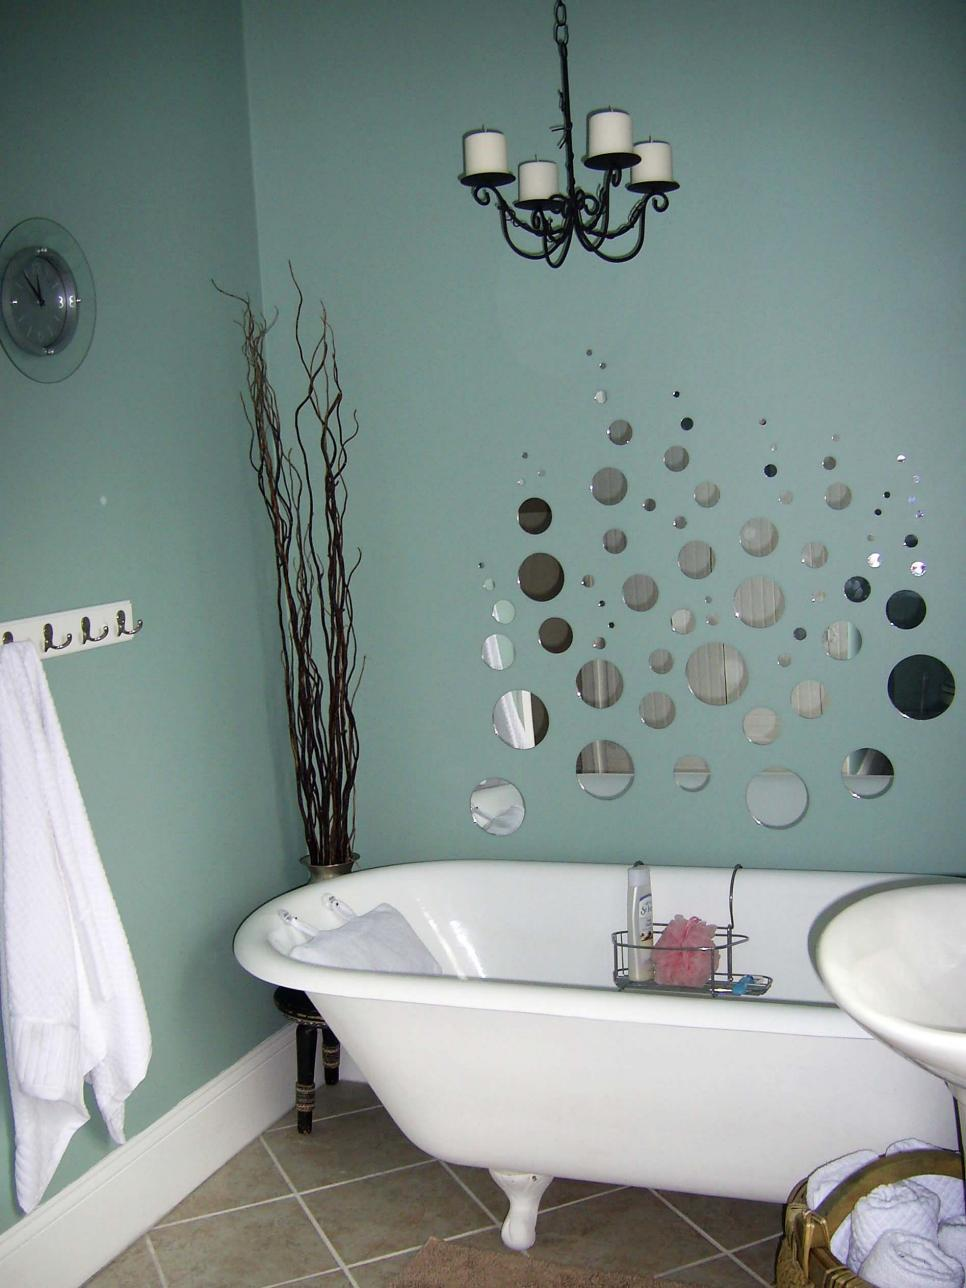 Wall Art Ideas For Small Bathroom : Bathrooms on a budget our favorites from rate my space